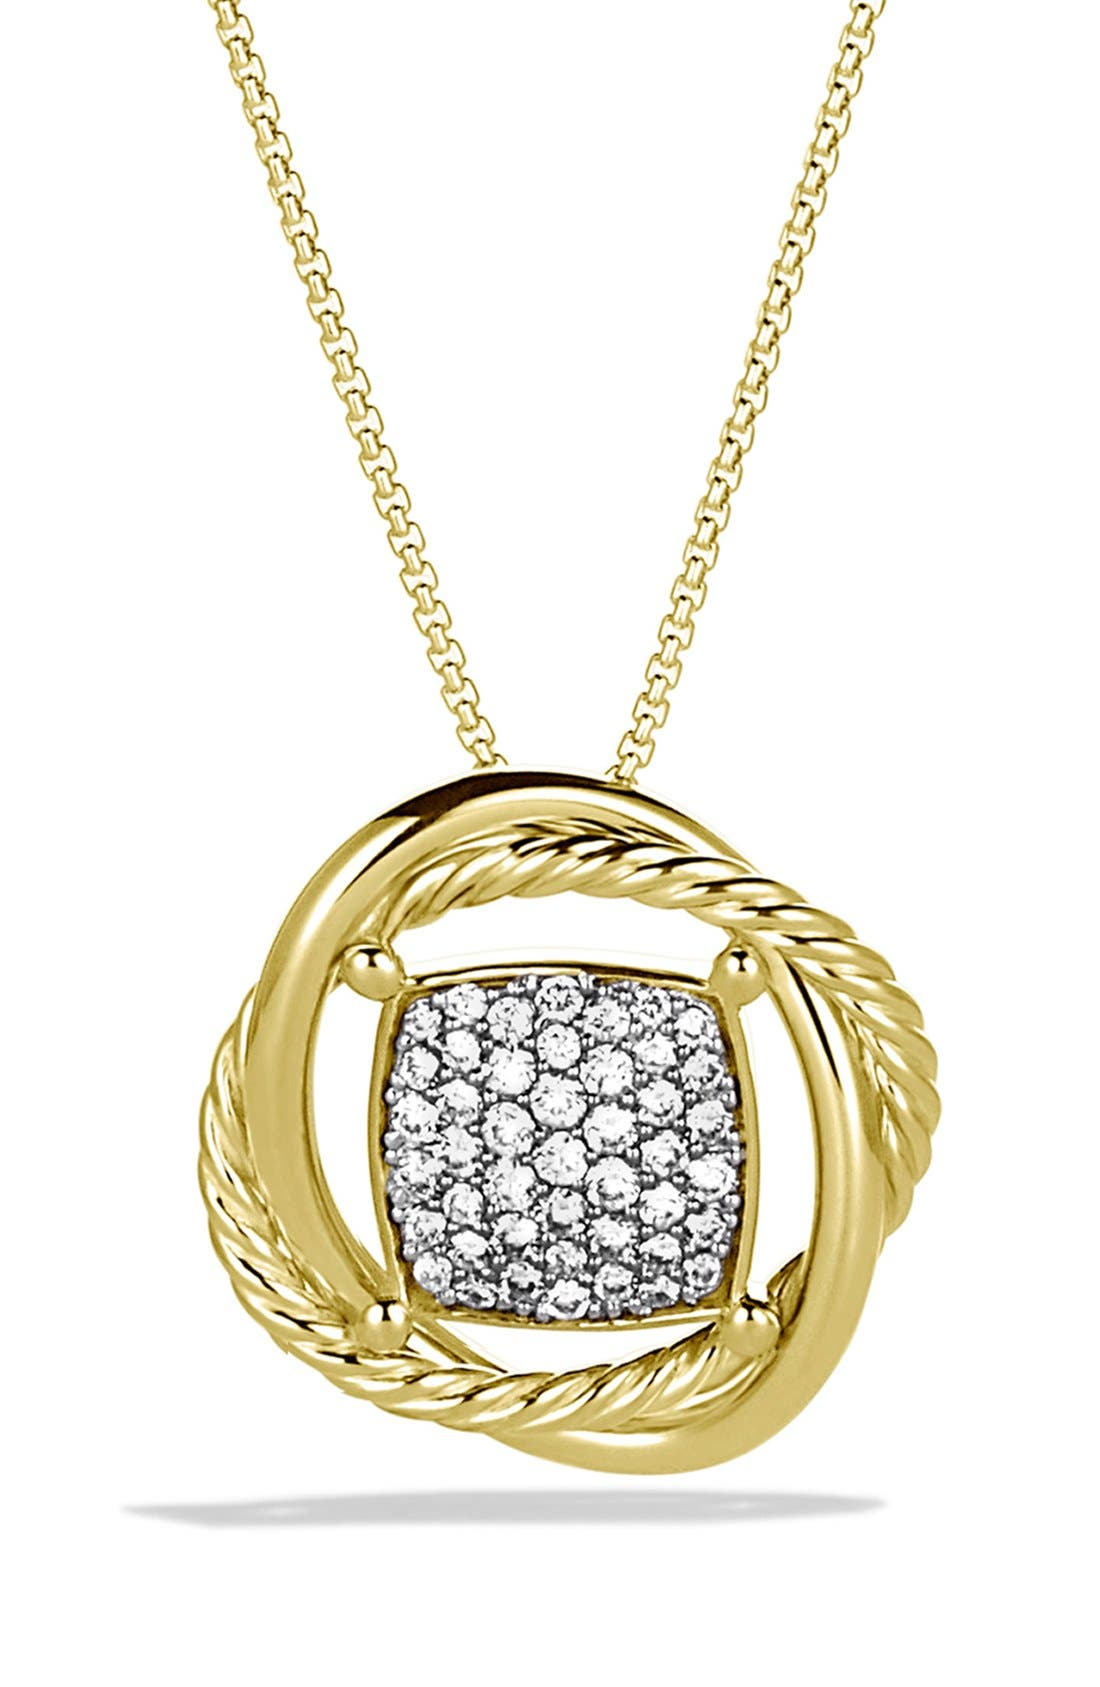 'Infinity' Infinity Pendant with Diamonds in Gold on Chain,                             Main thumbnail 1, color,                             DIAMOND